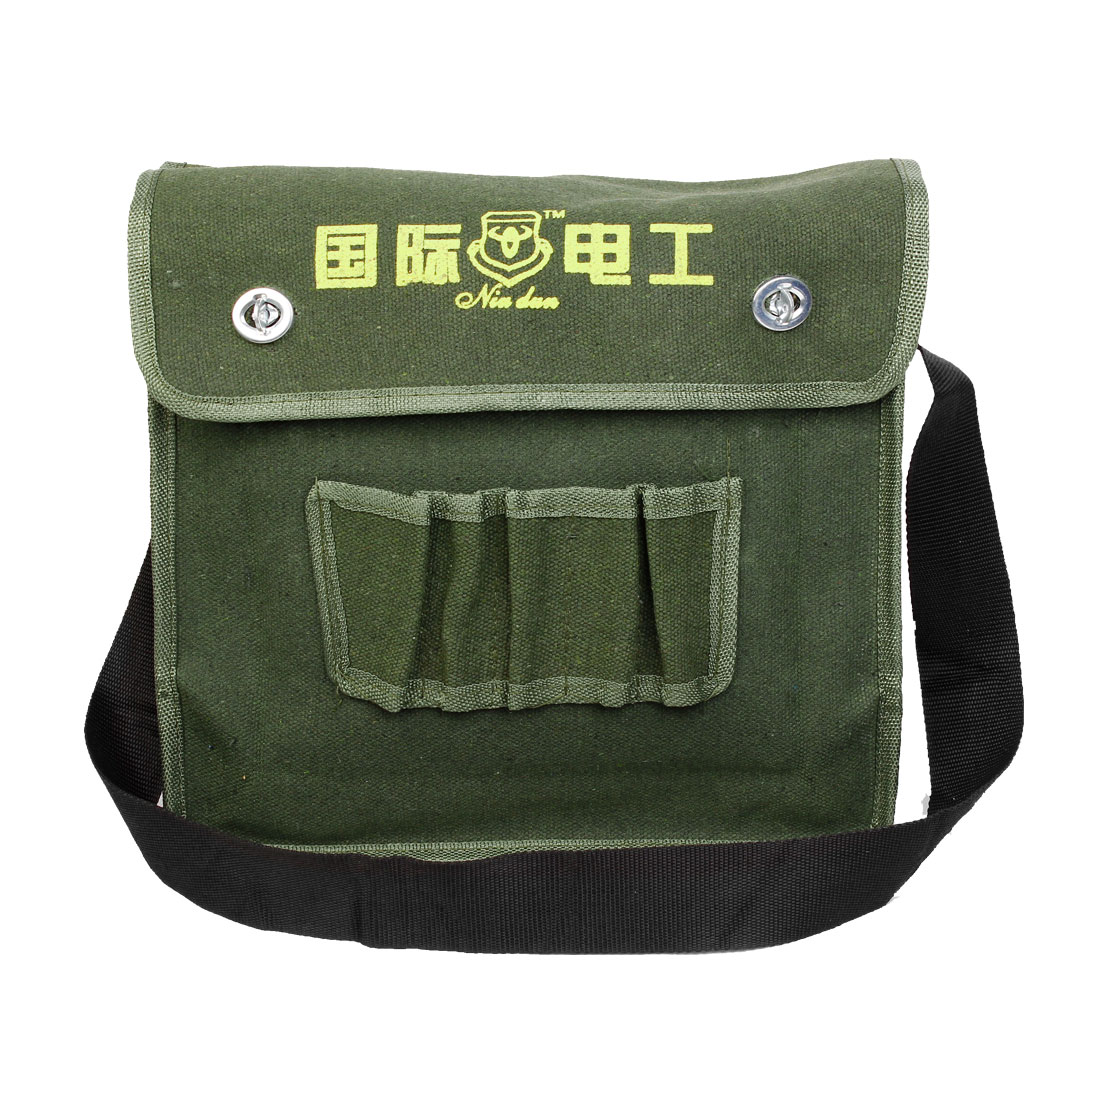 Turn Lock Clasp Closure Electrician Tool Canvas Storage Bag Army Green